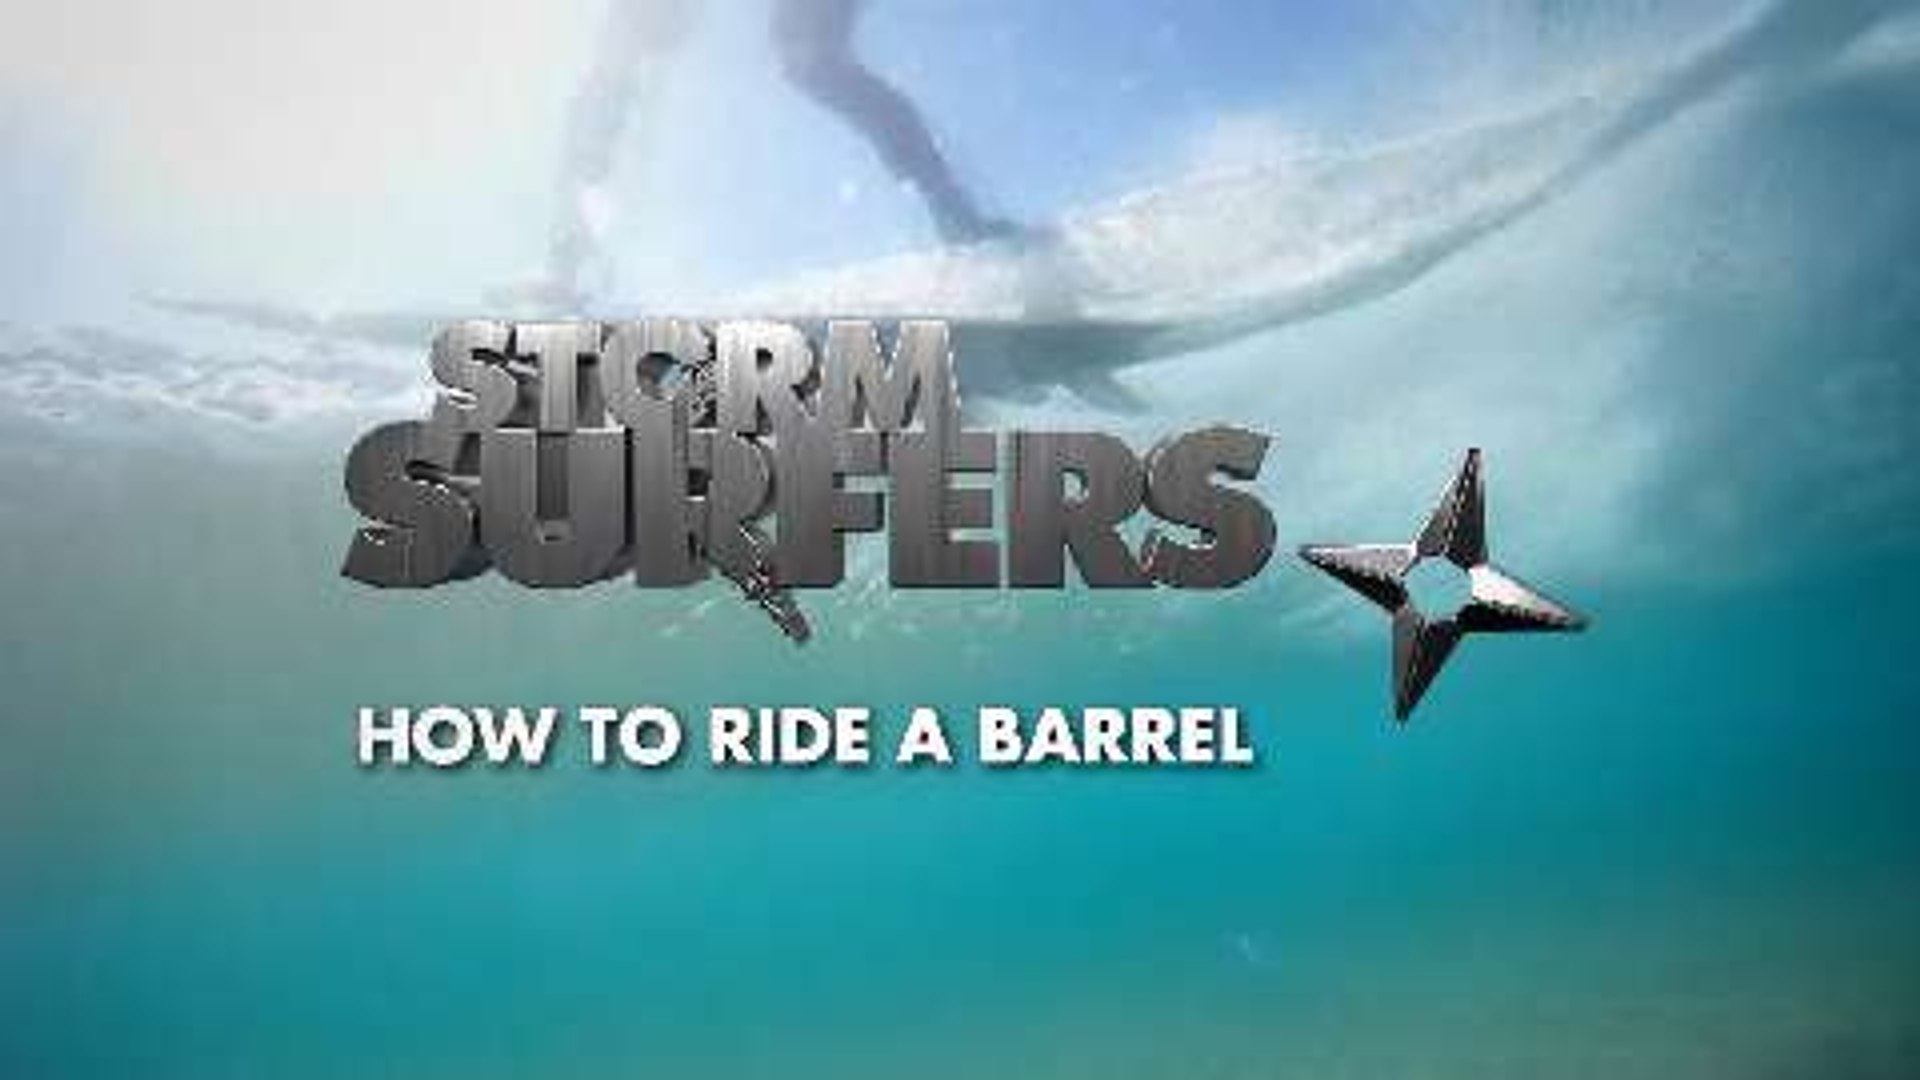 How to Get Barreled | Storm Surfers